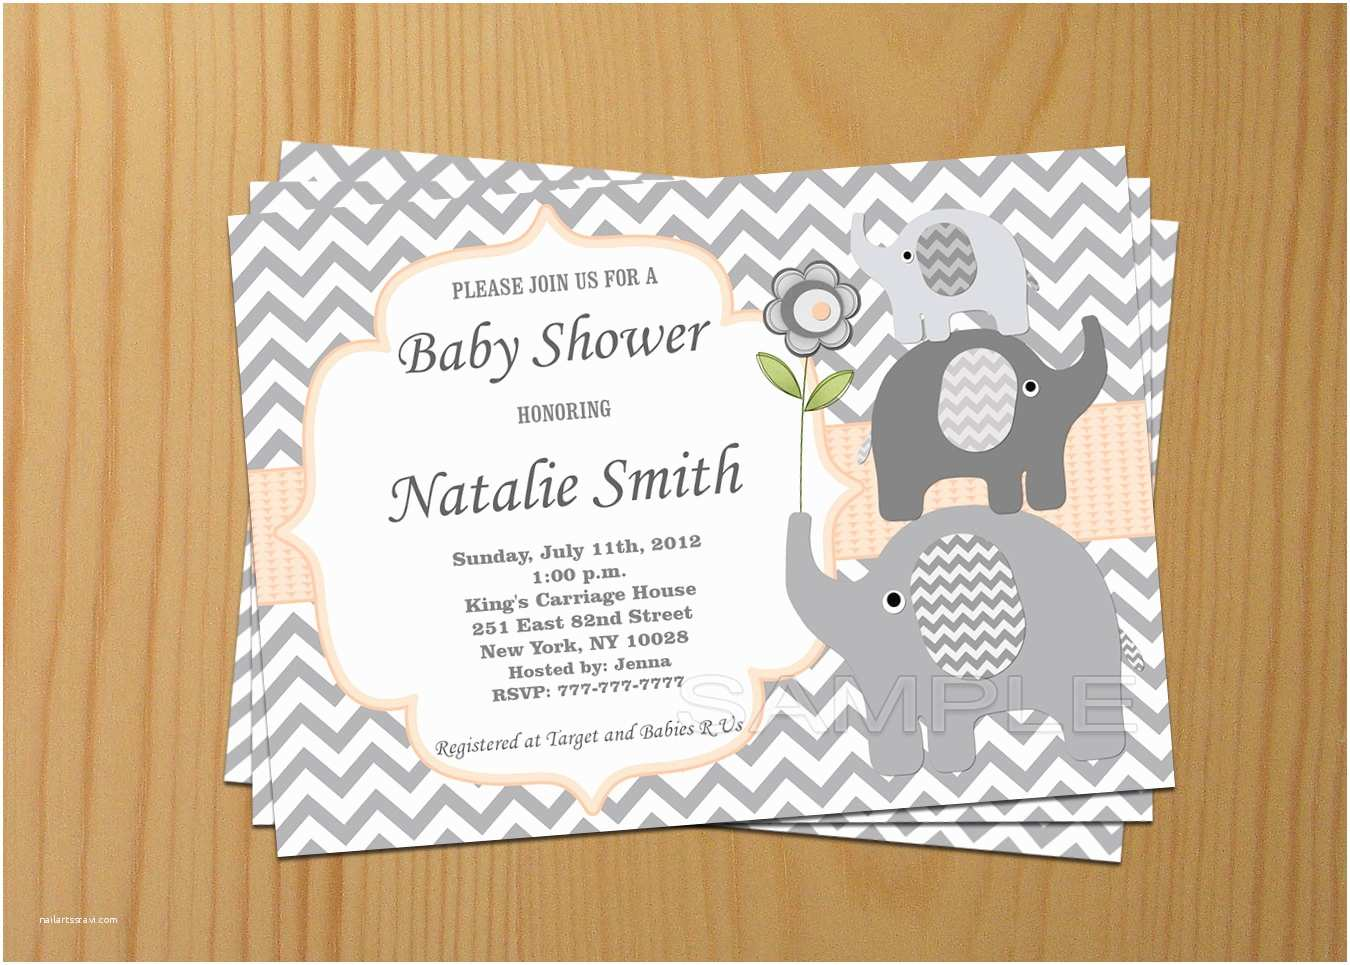 Downloadable Baby Shower Invitations Able Baby Shower Invitations Downloadable Baby